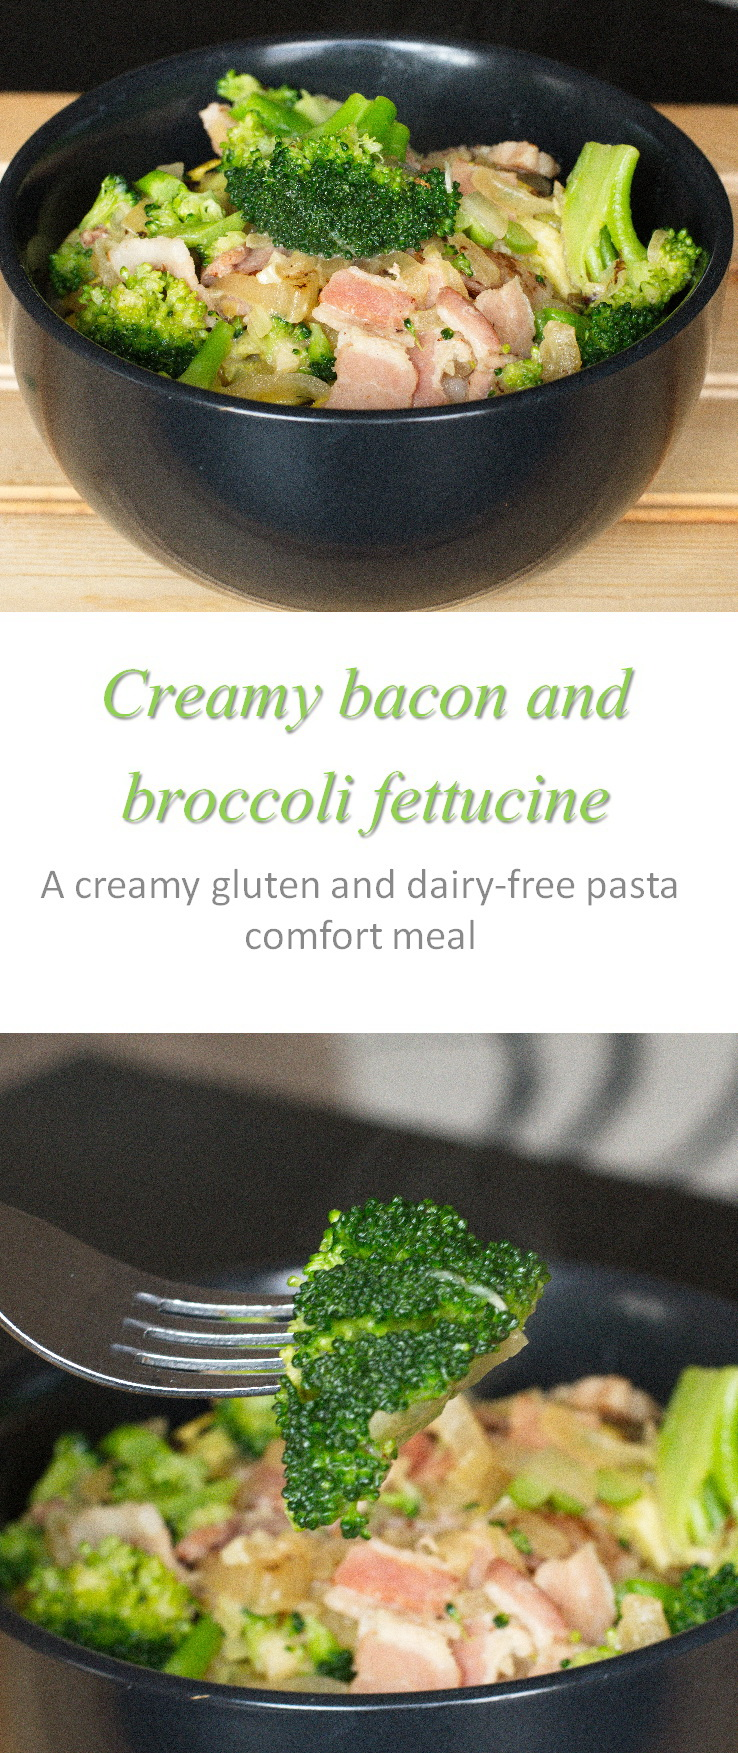 Creamy bacon broccoli pasta - made gluten and dairy free, even Whole30 compliant, and is always yummy #pasta